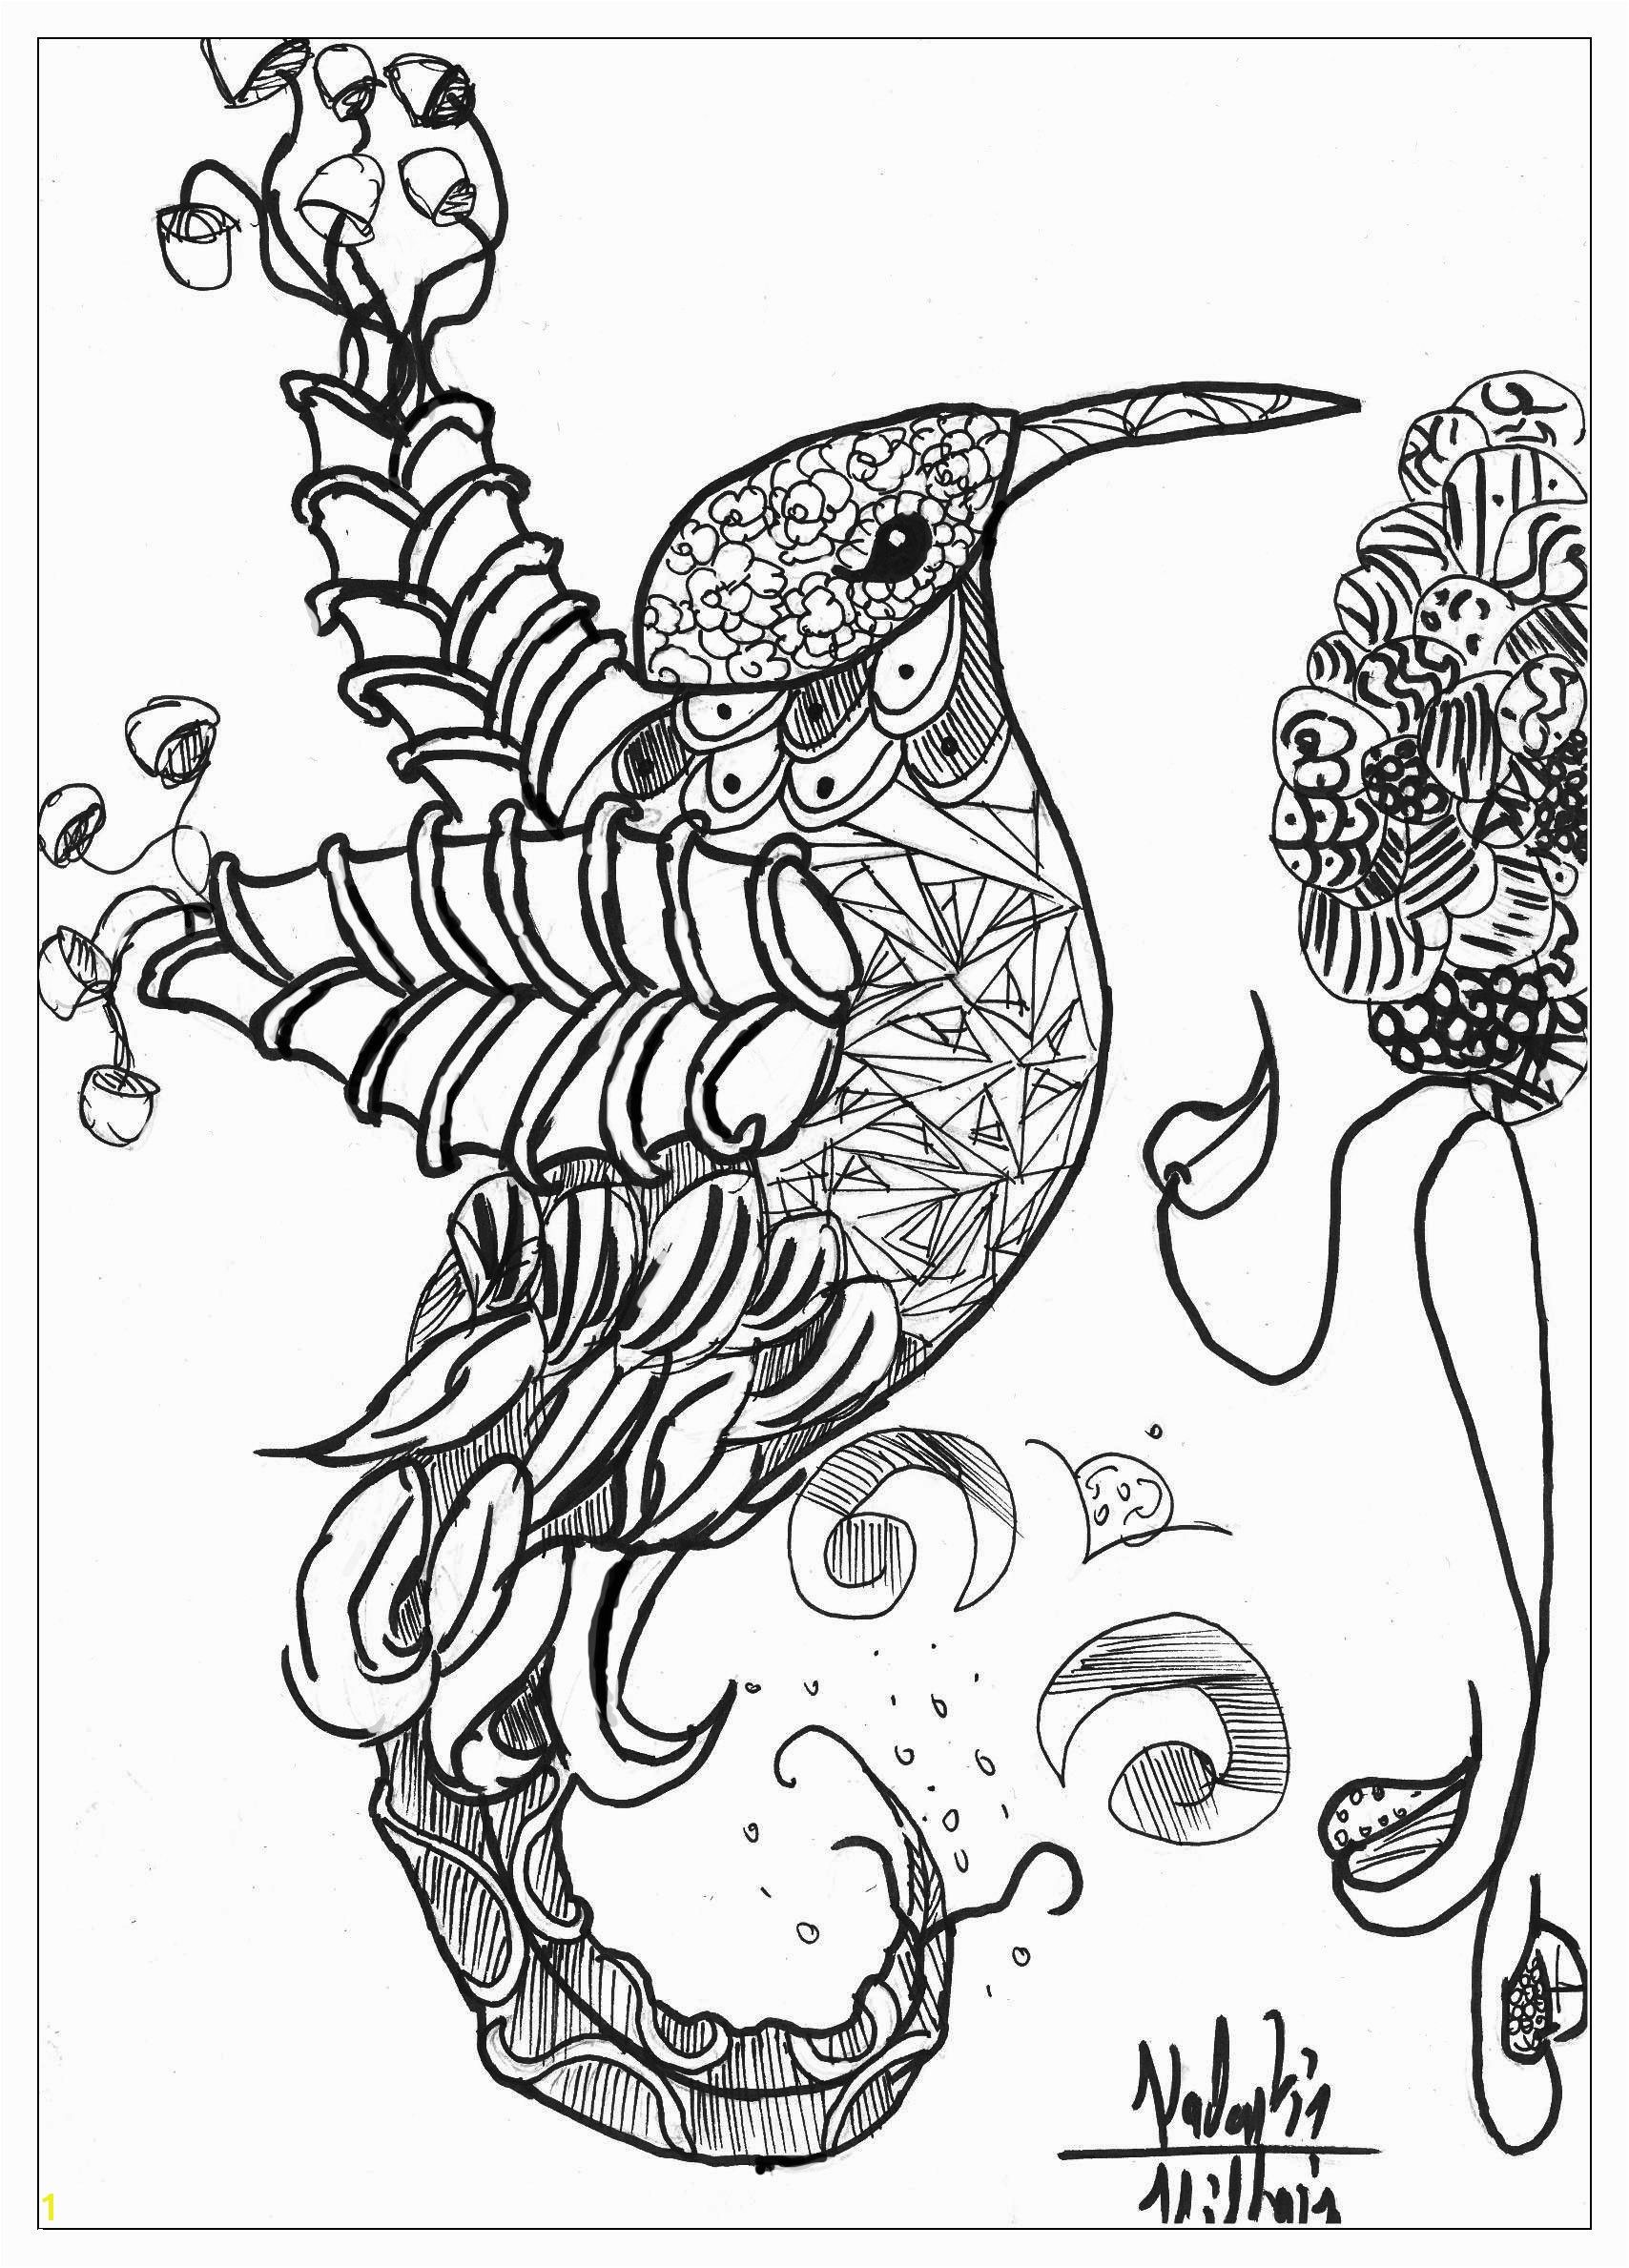 Abstract Detailed Animal Coloring Pages   Best Coloring Pages